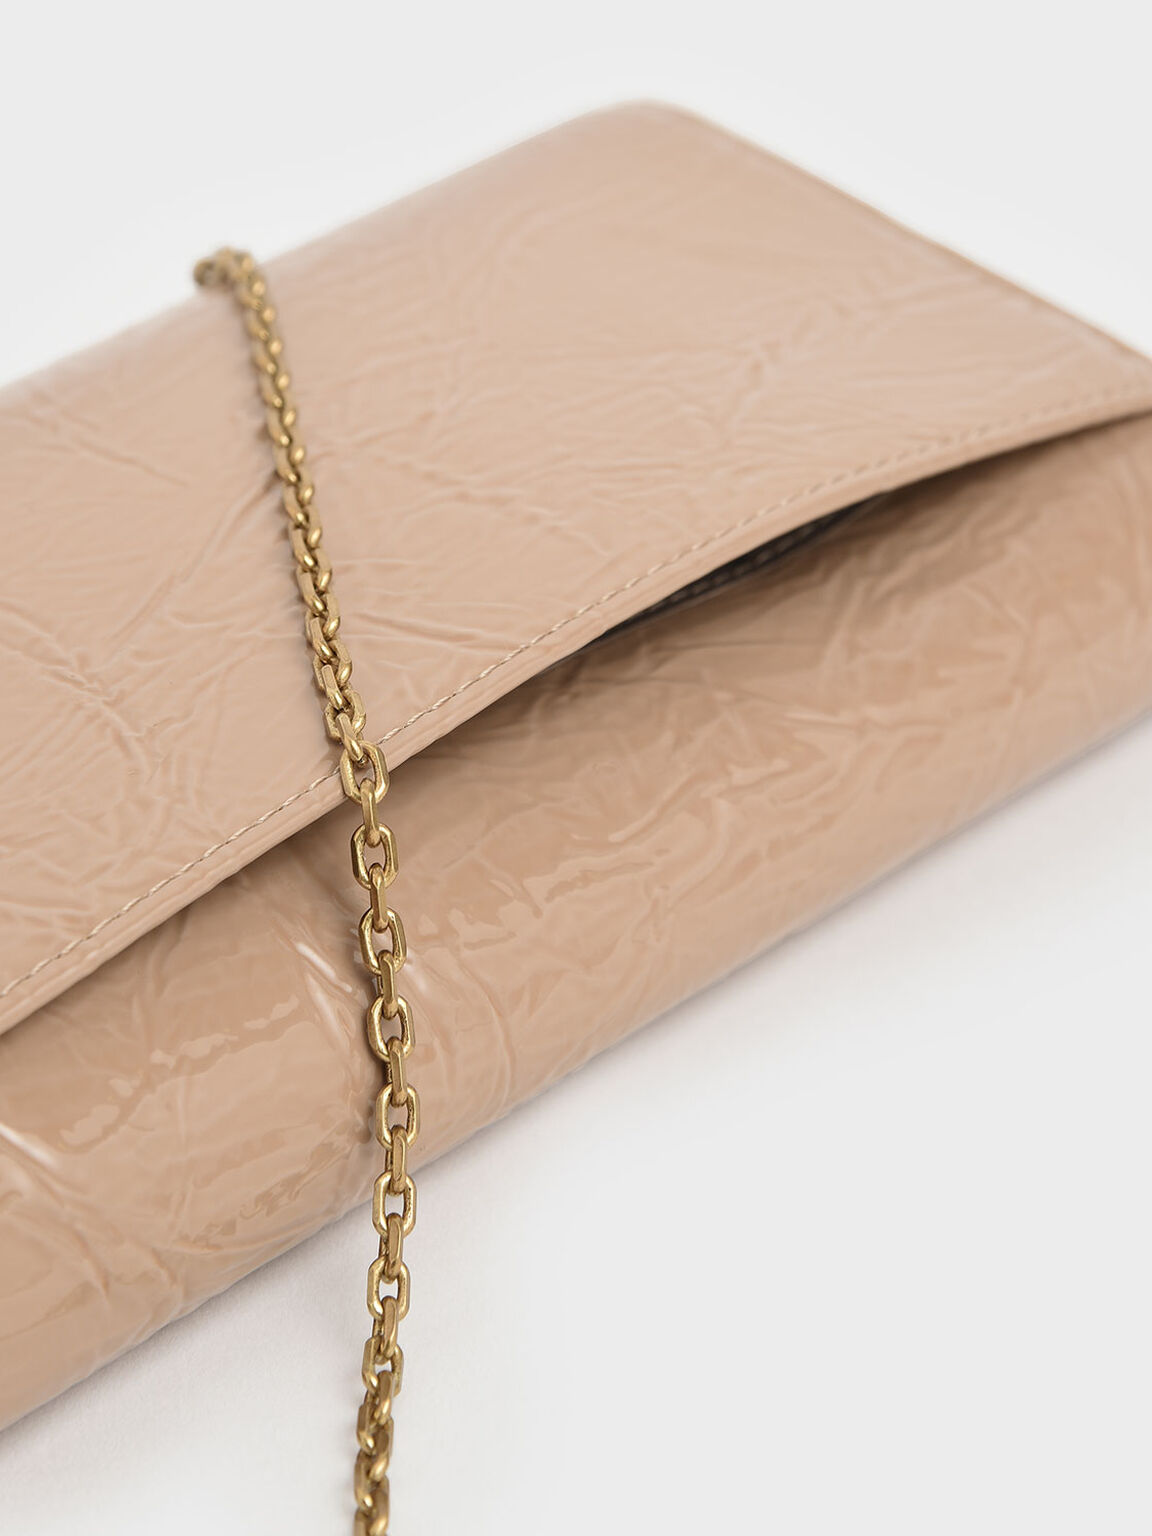 Wrinkled Patent Ring Zip Flap Long Wallet, Beige, hi-res